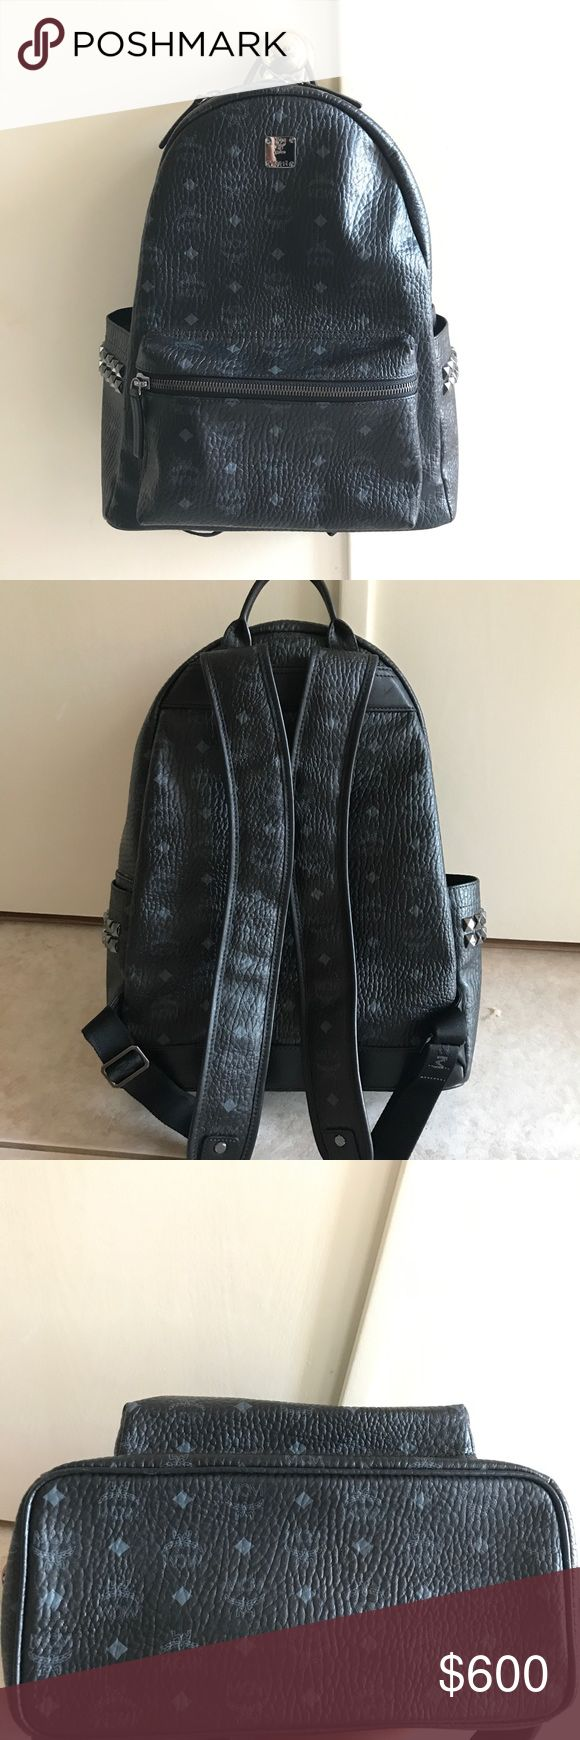 """Medium Stark Coated Canvas Backpack Authentic MCM Backpack in black leather. 13""""W x 16 ½""""H x 6""""D. (Interior capacity: extra-large.) this backpack is in like new condition, only thing is the inside logo marked with black marker. See last picture for detail. MCM Bags Backpacks"""